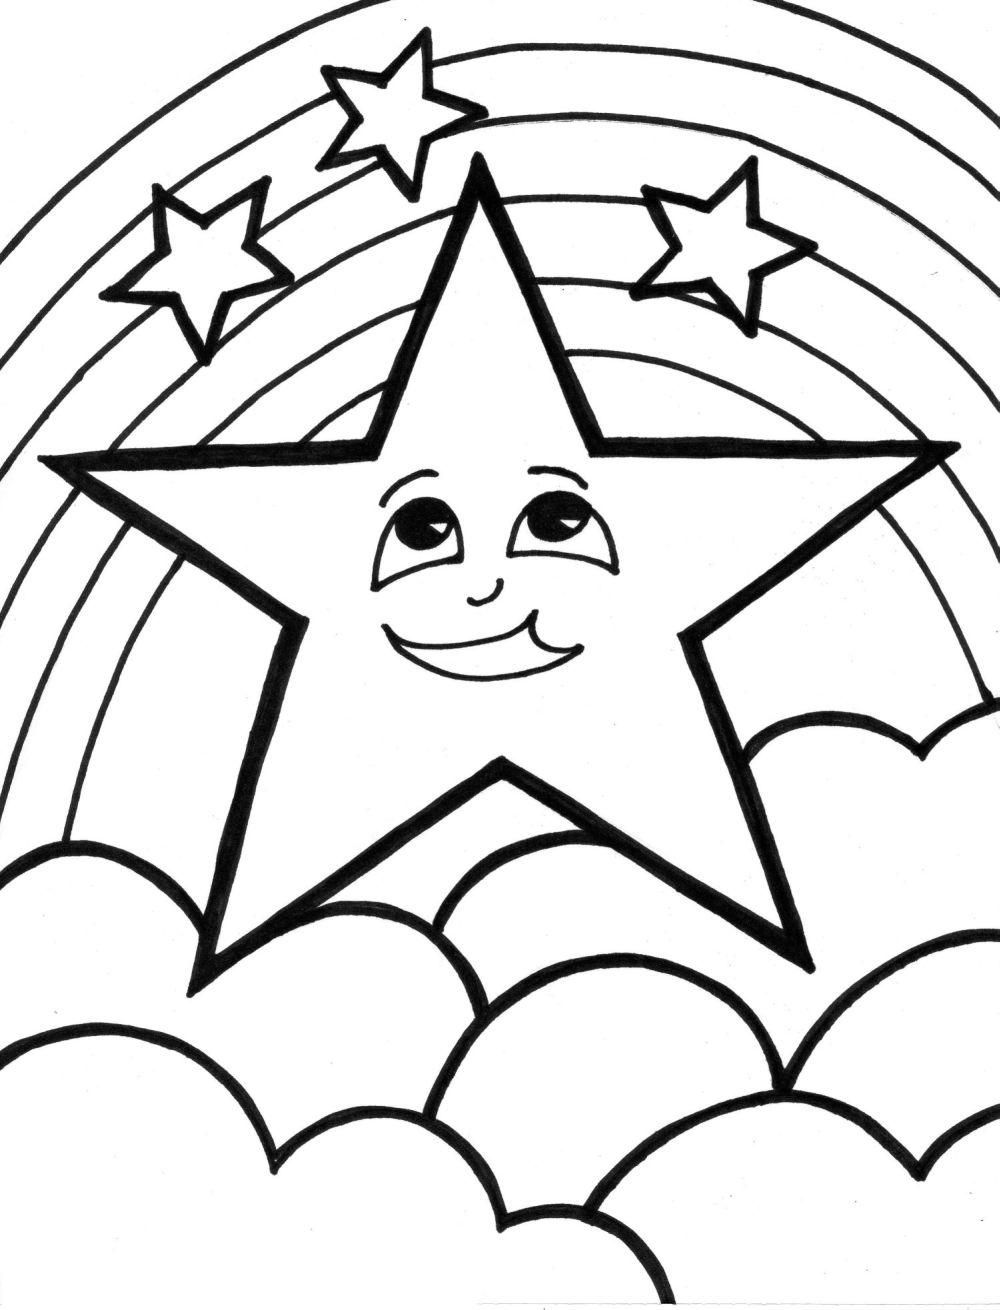 Free Printable Star Coloring Pages For Kids Shape Coloring Pages Star Coloring Pages Free Coloring Pages